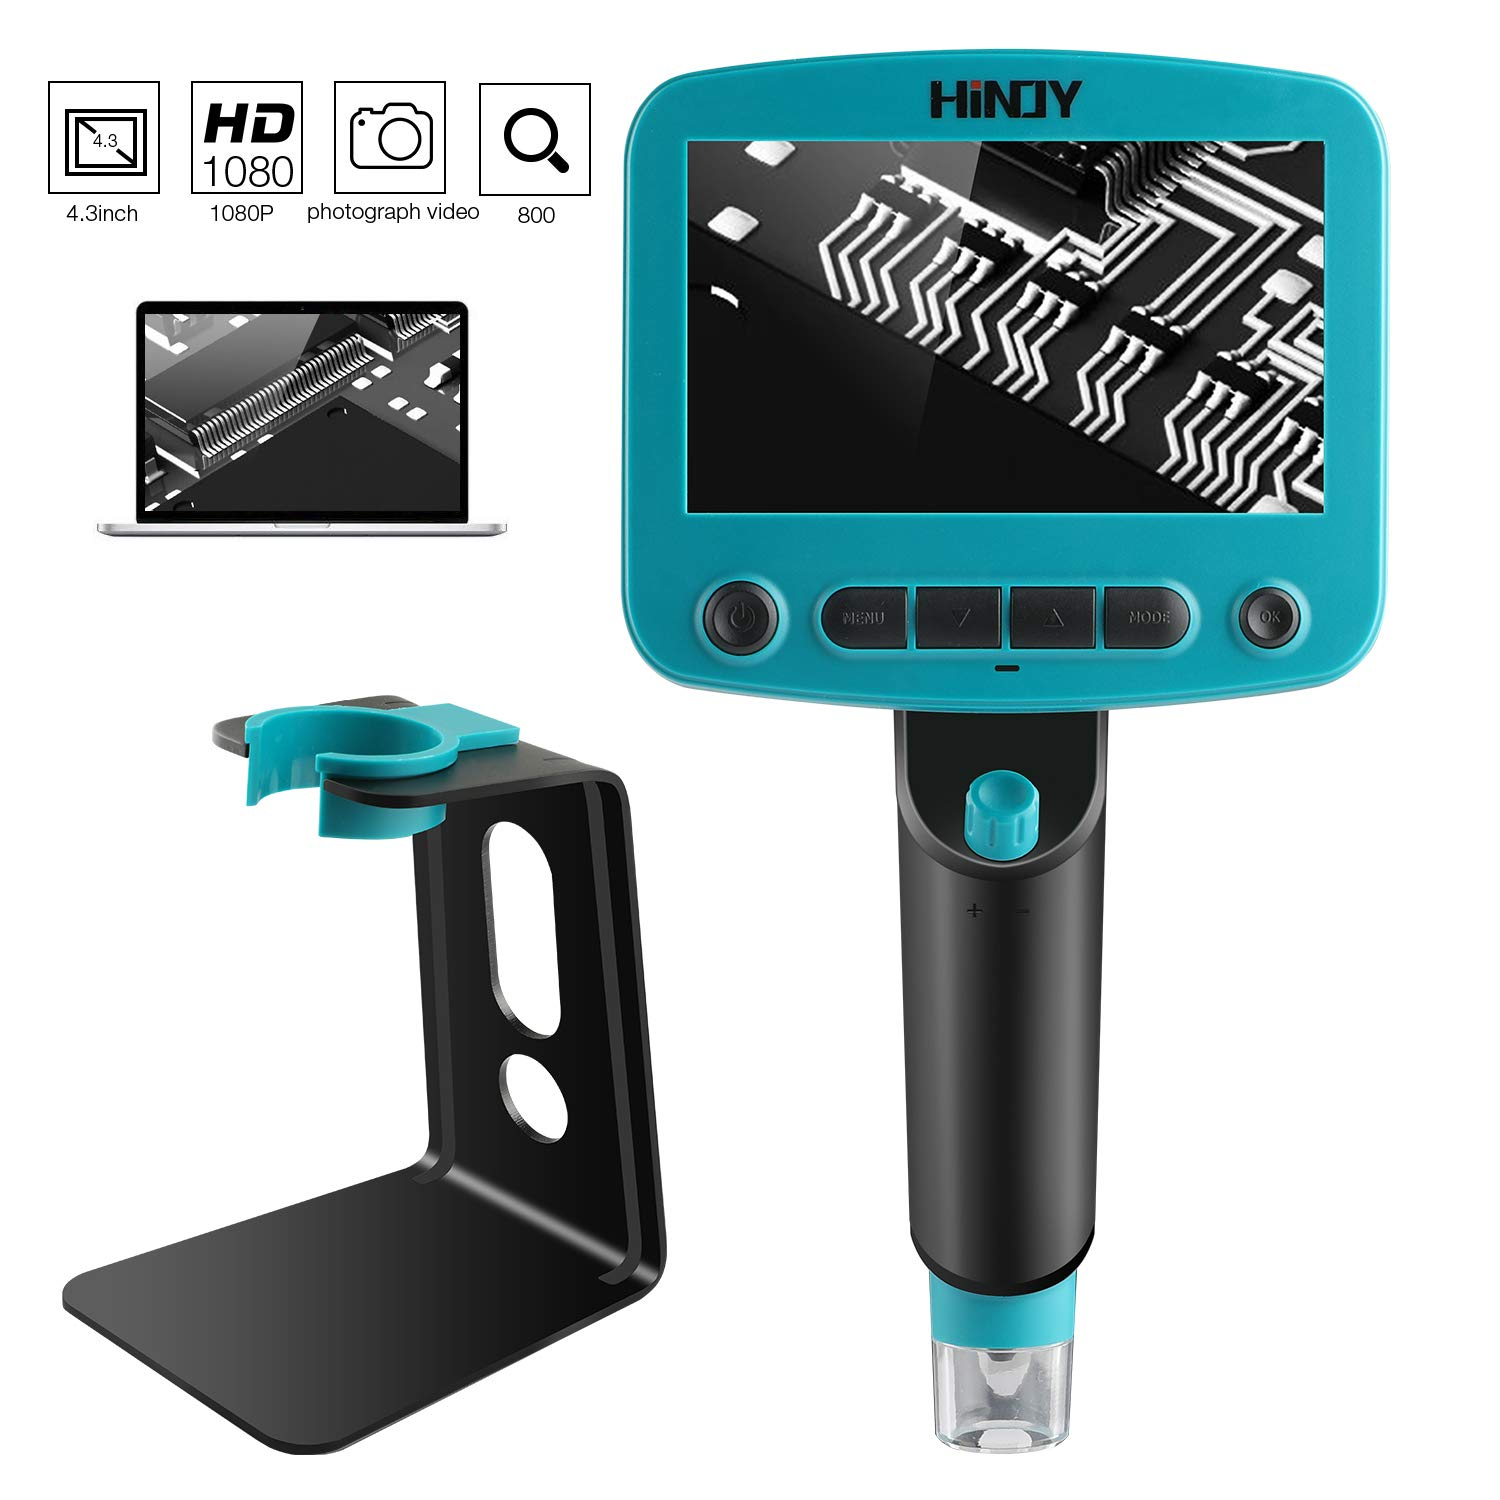 HINOY 4.3 inch HD LCD Digital USB Microscope Camera 1x to 800x Magnifier Zoom 5Mpix Portable with 8 Adjustable LED Lights Inspection Camera Photograph Video Recorder for PC